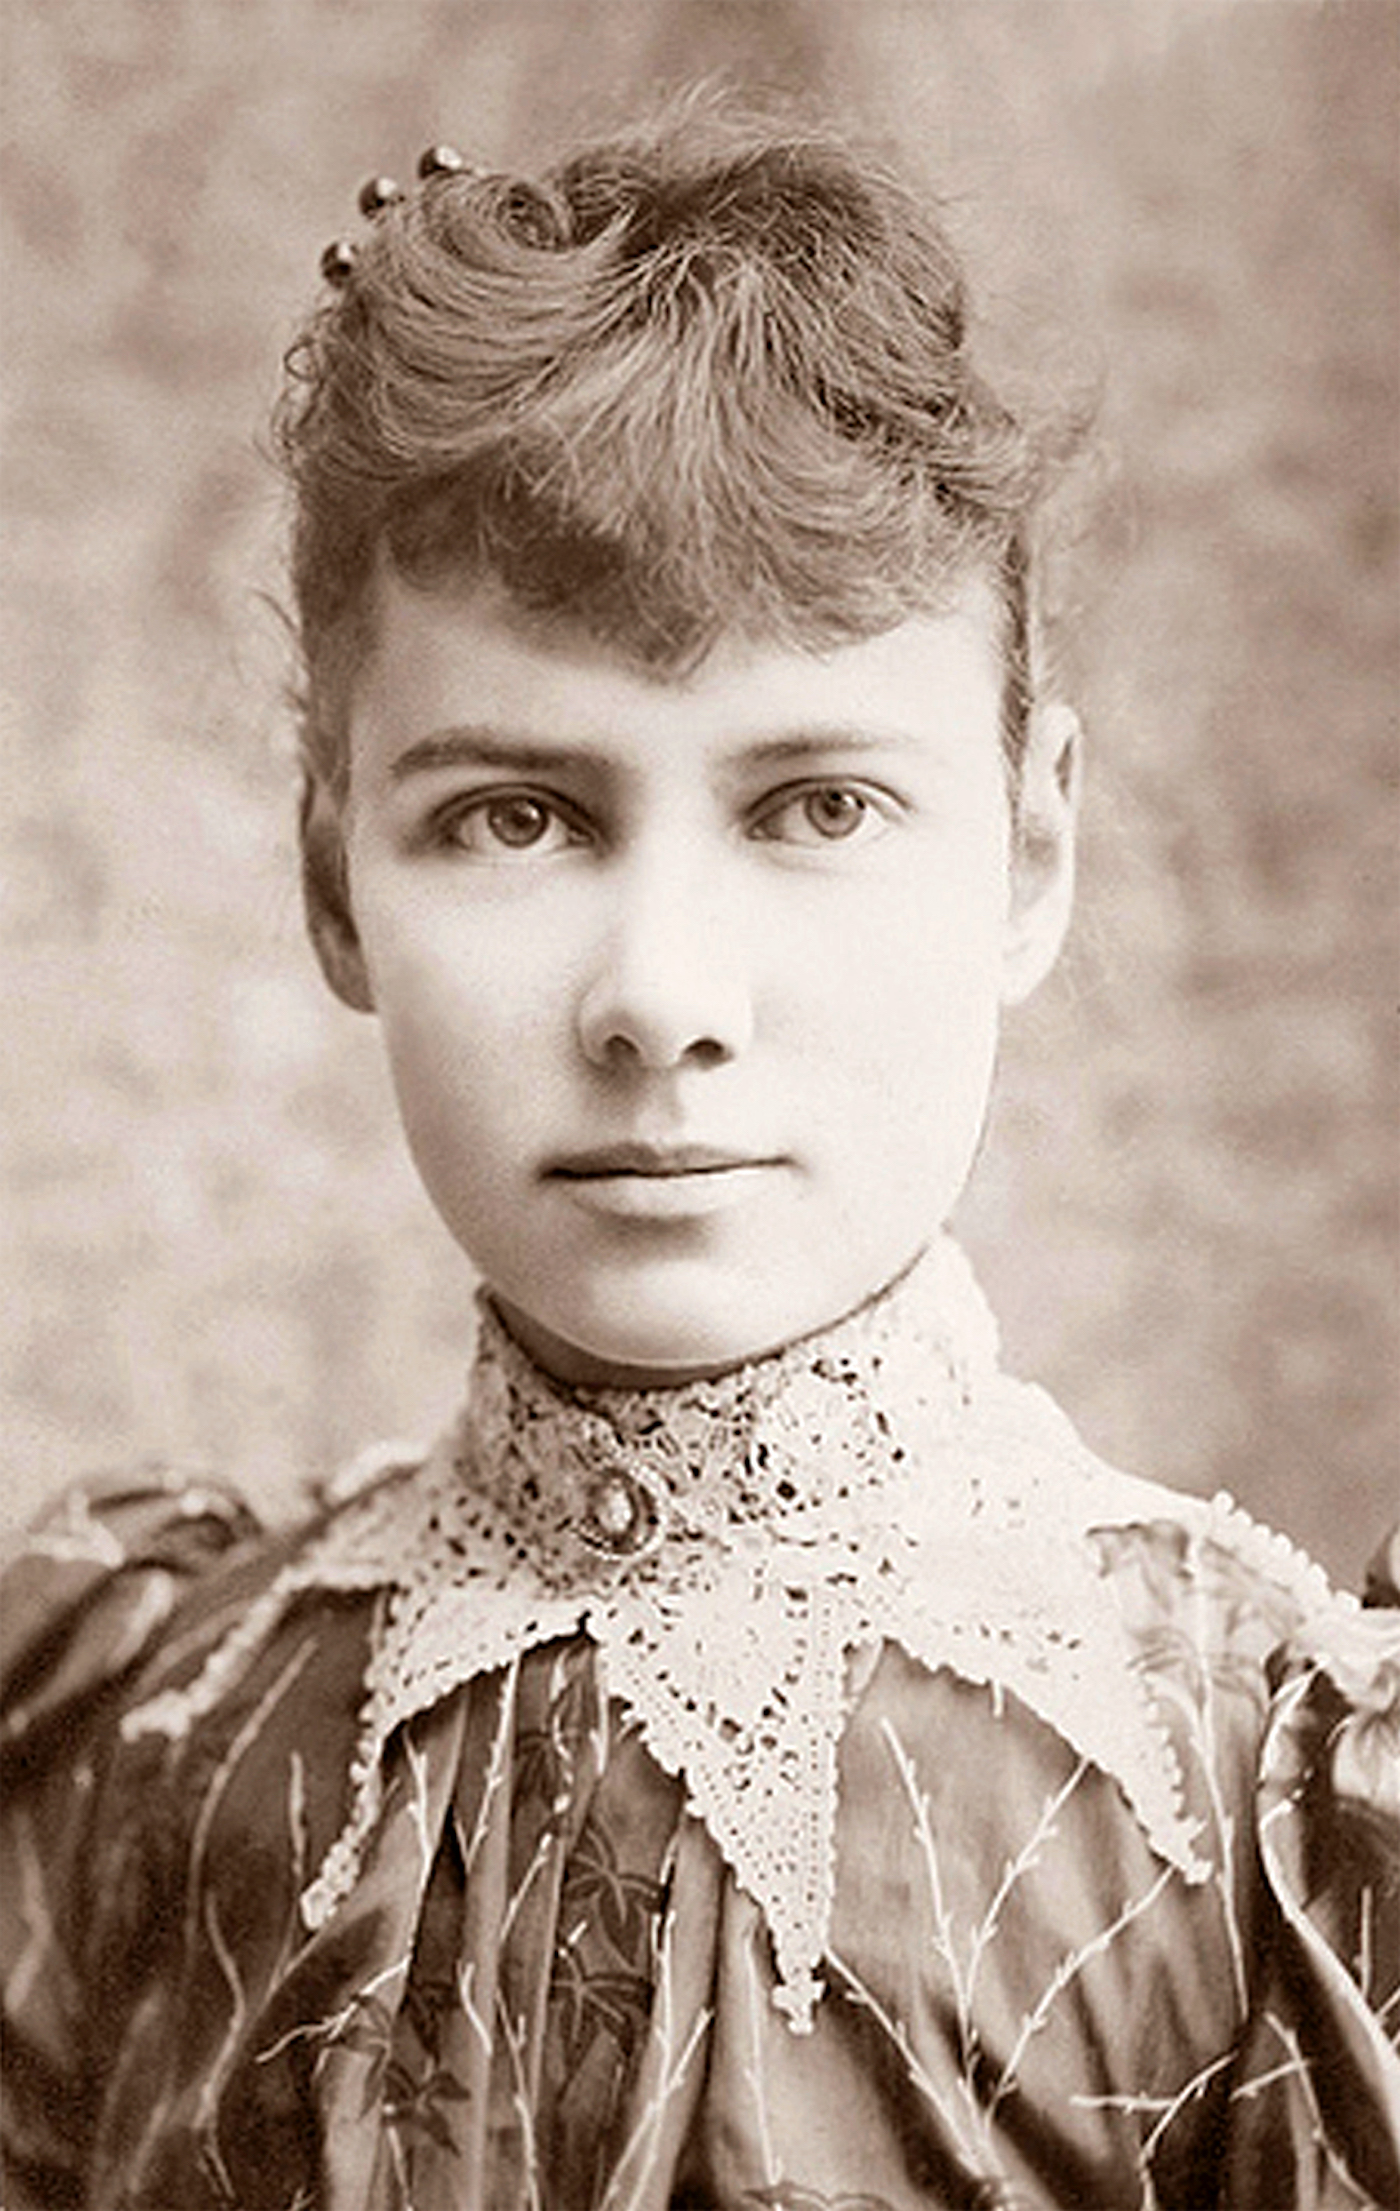 Journalist Nellie Bly Will Receive a Monument on the Grounds of the Asylum She Helped Close